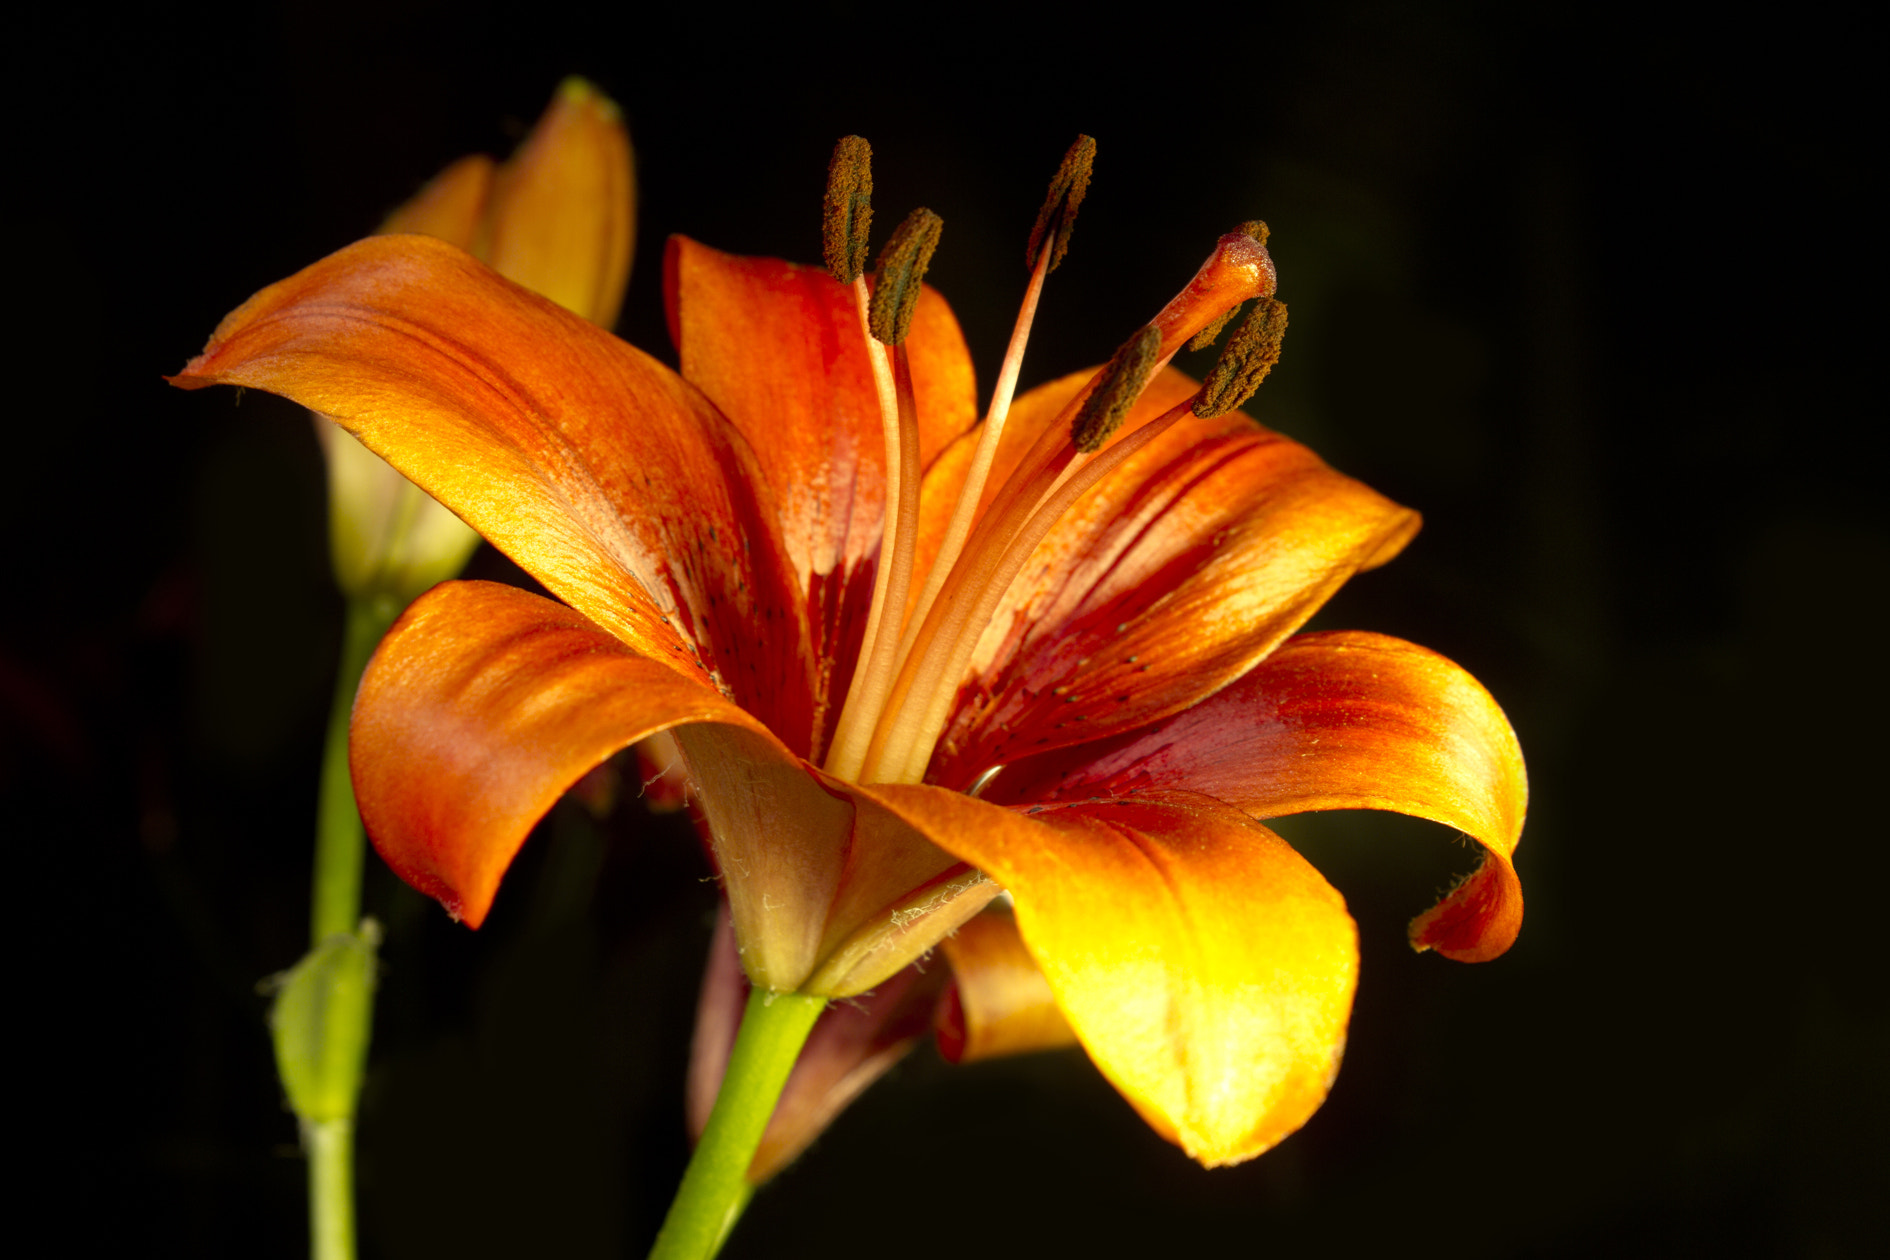 Photograph Lily Orange by anass mohamed on 500px